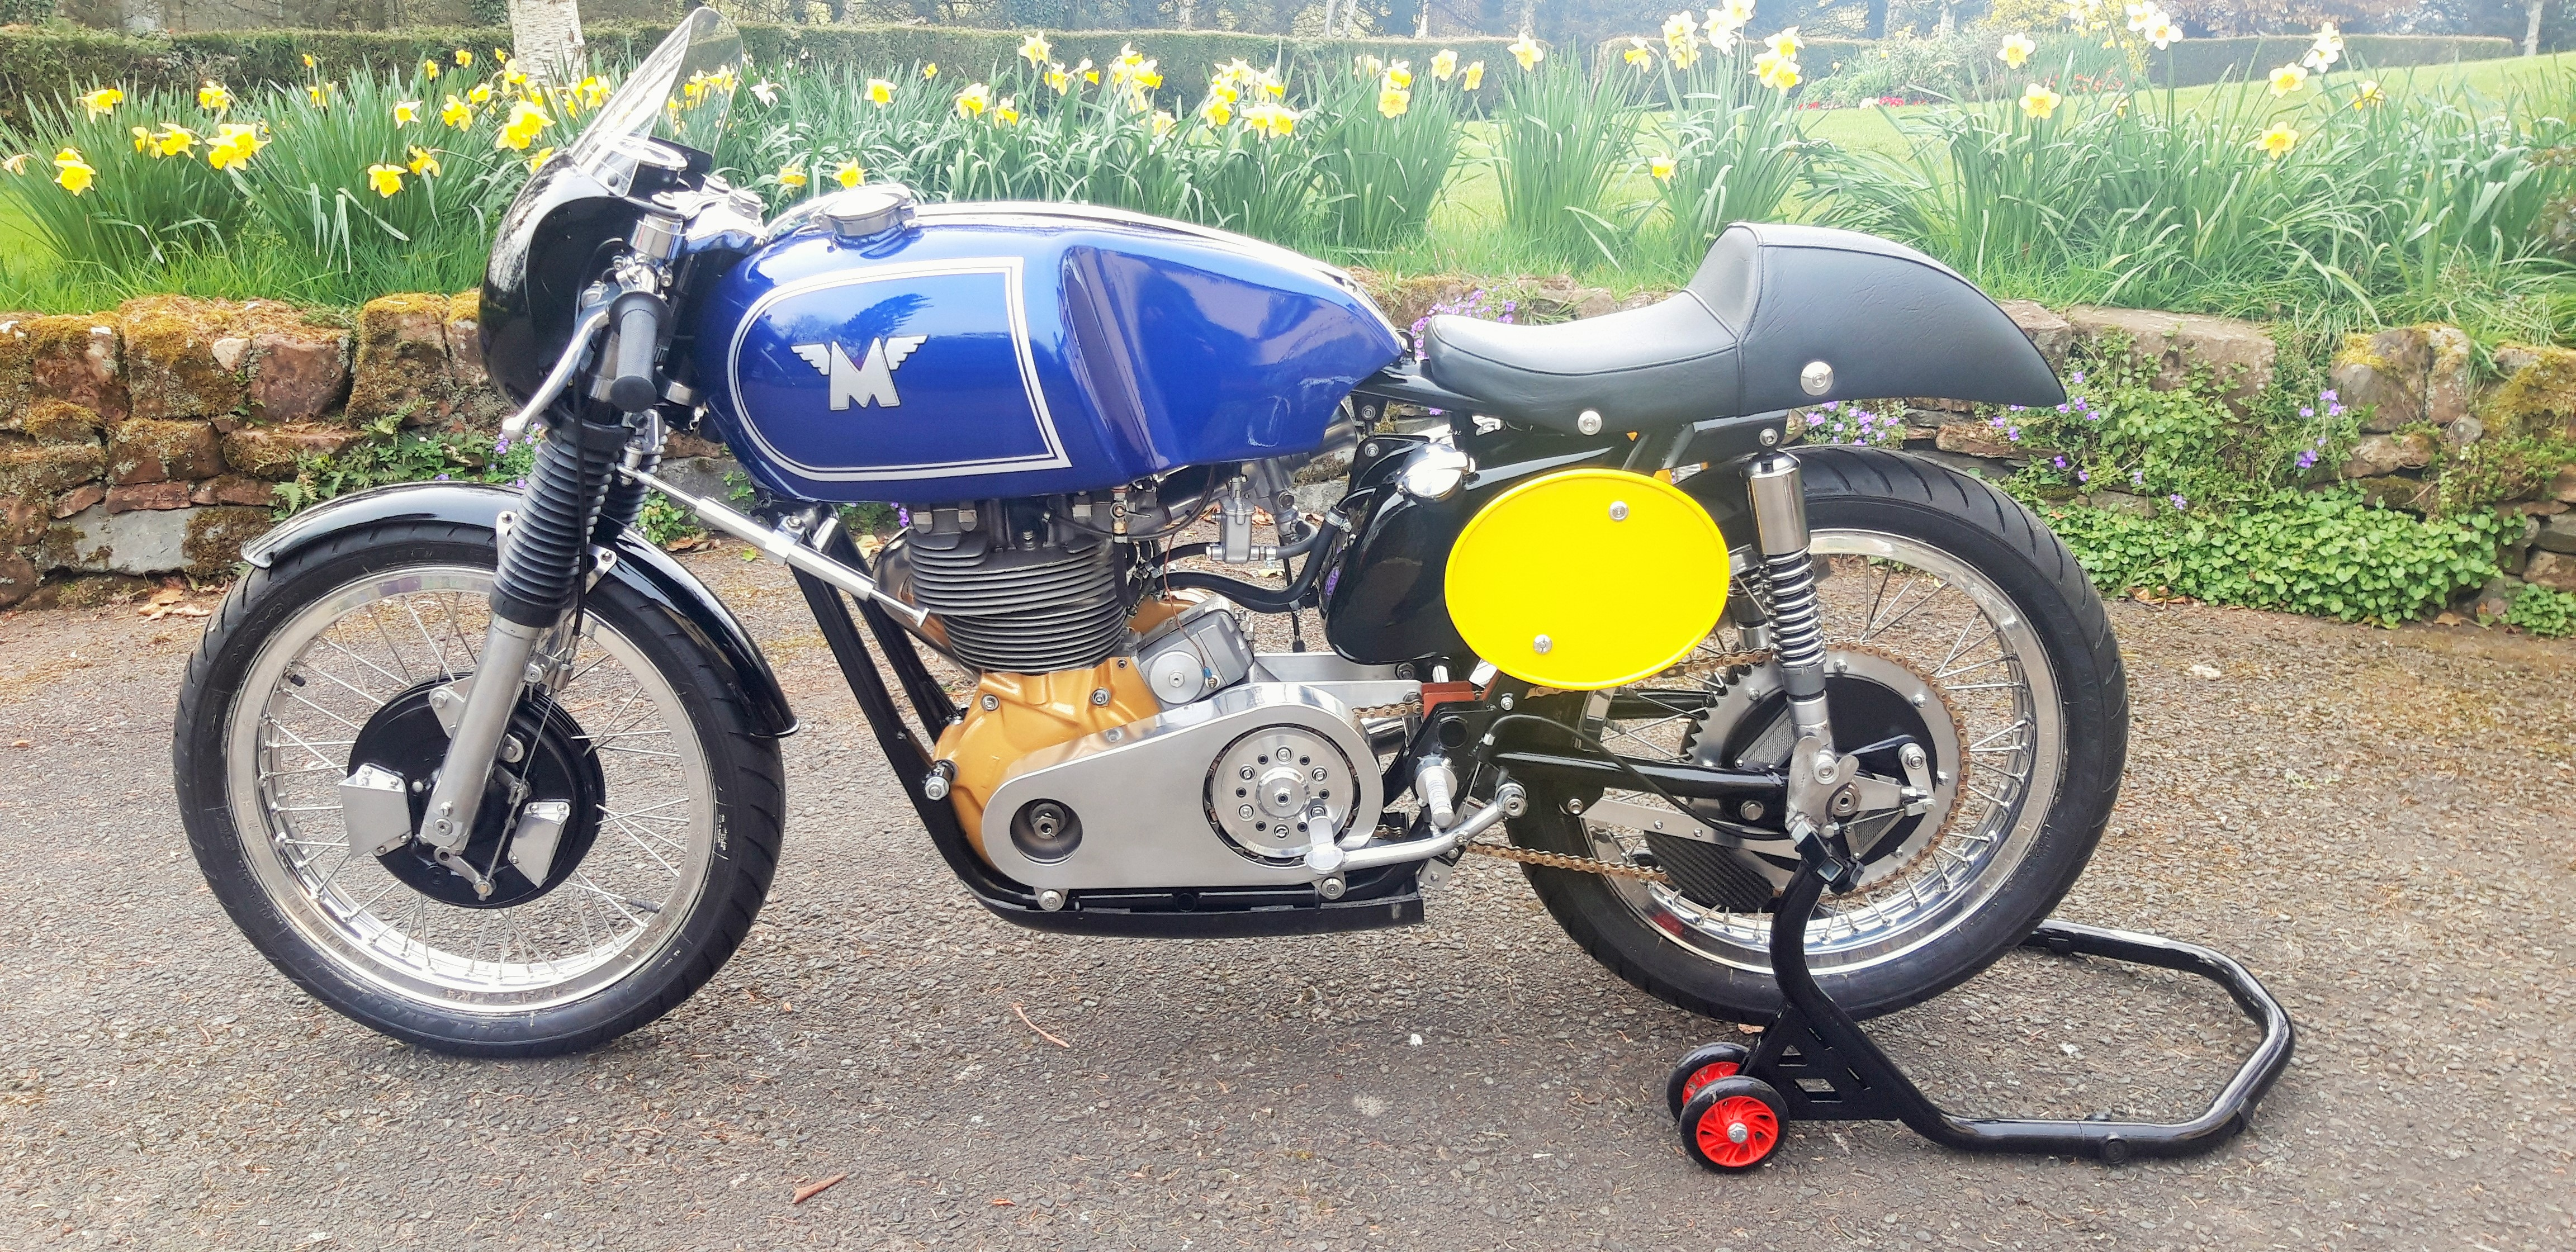 Matchless G50 pic4